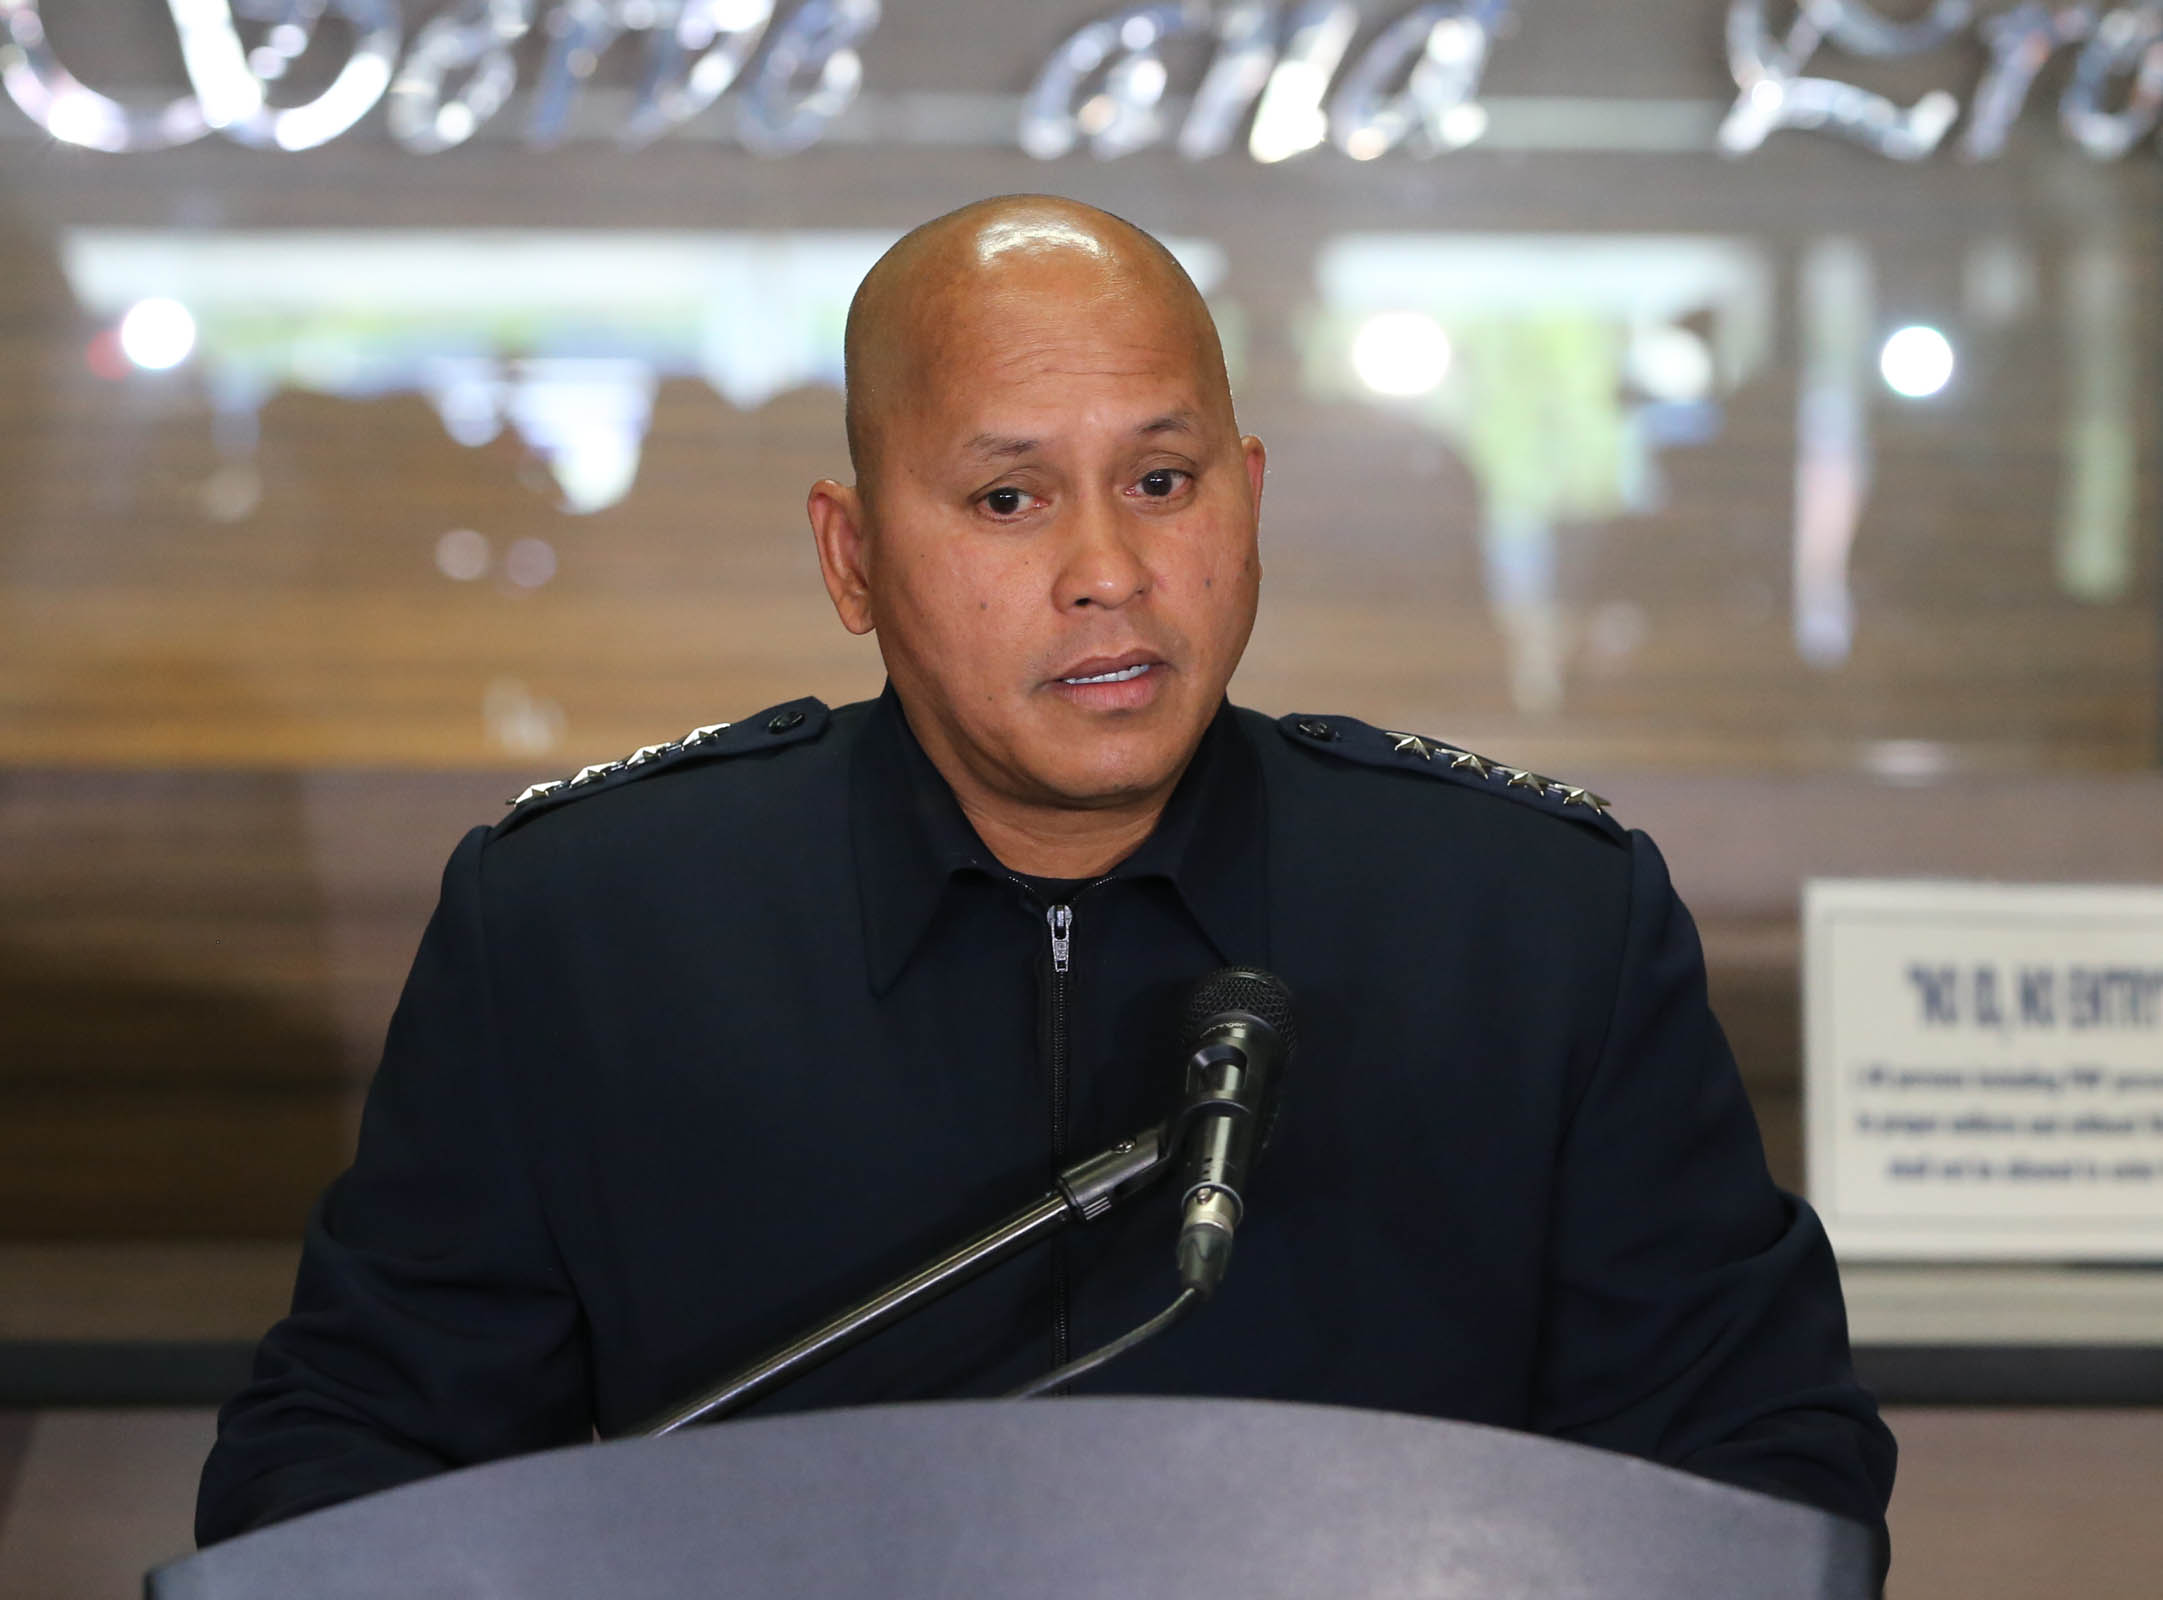 Philippine National Police (PNP) Chief Director General Ronald Dela Rosa delivers his statement during a press conference on Saturday (Sept. 3, 2016) at the National Headquarters Camp Crame, Quezon City, in connection with the explosion that rocked Davao City Friday night. (Photo: Avito Dalan/PNA)